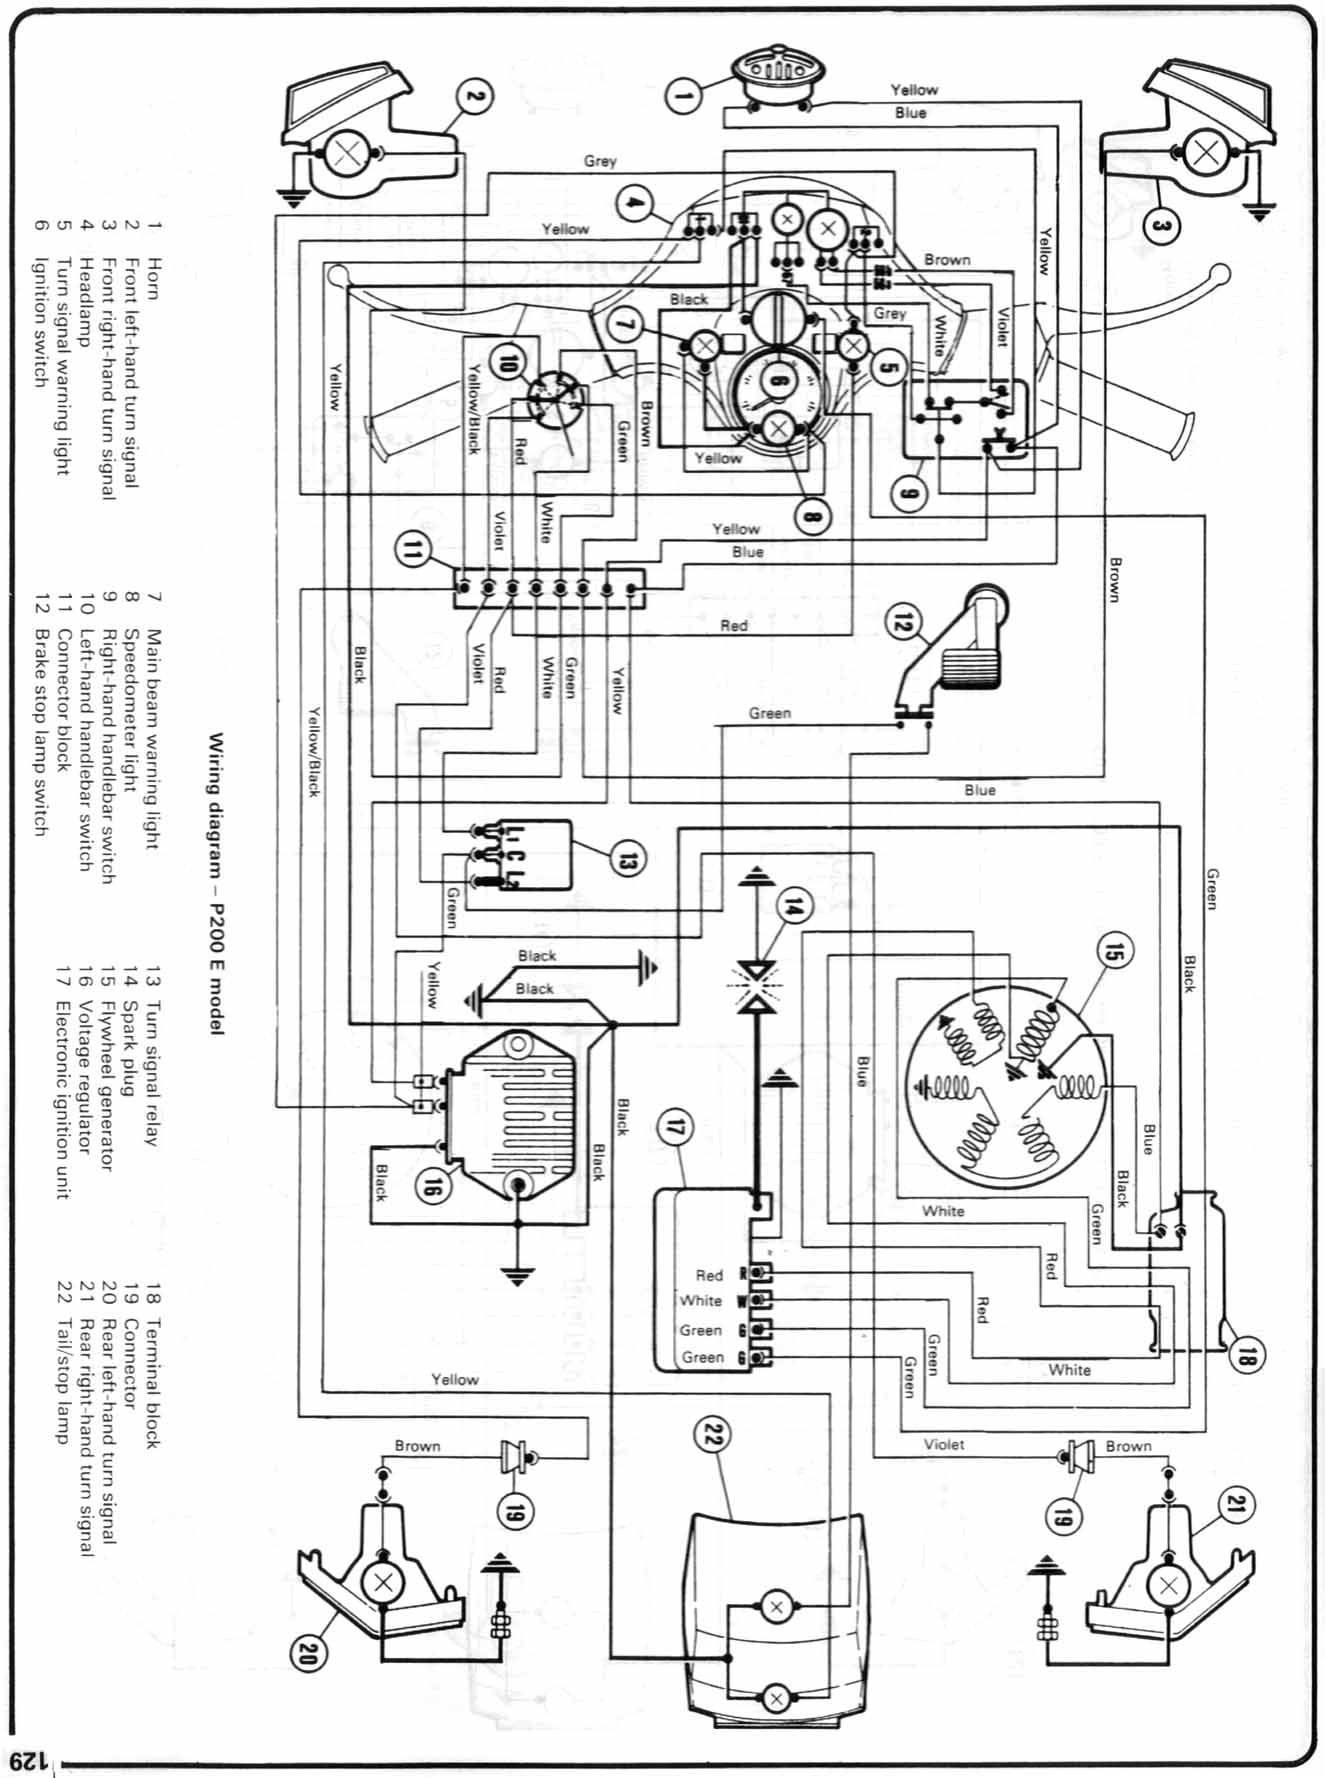 Douglas Relay Wiring Diagram on 2 Humbucker Wiring Diagrams